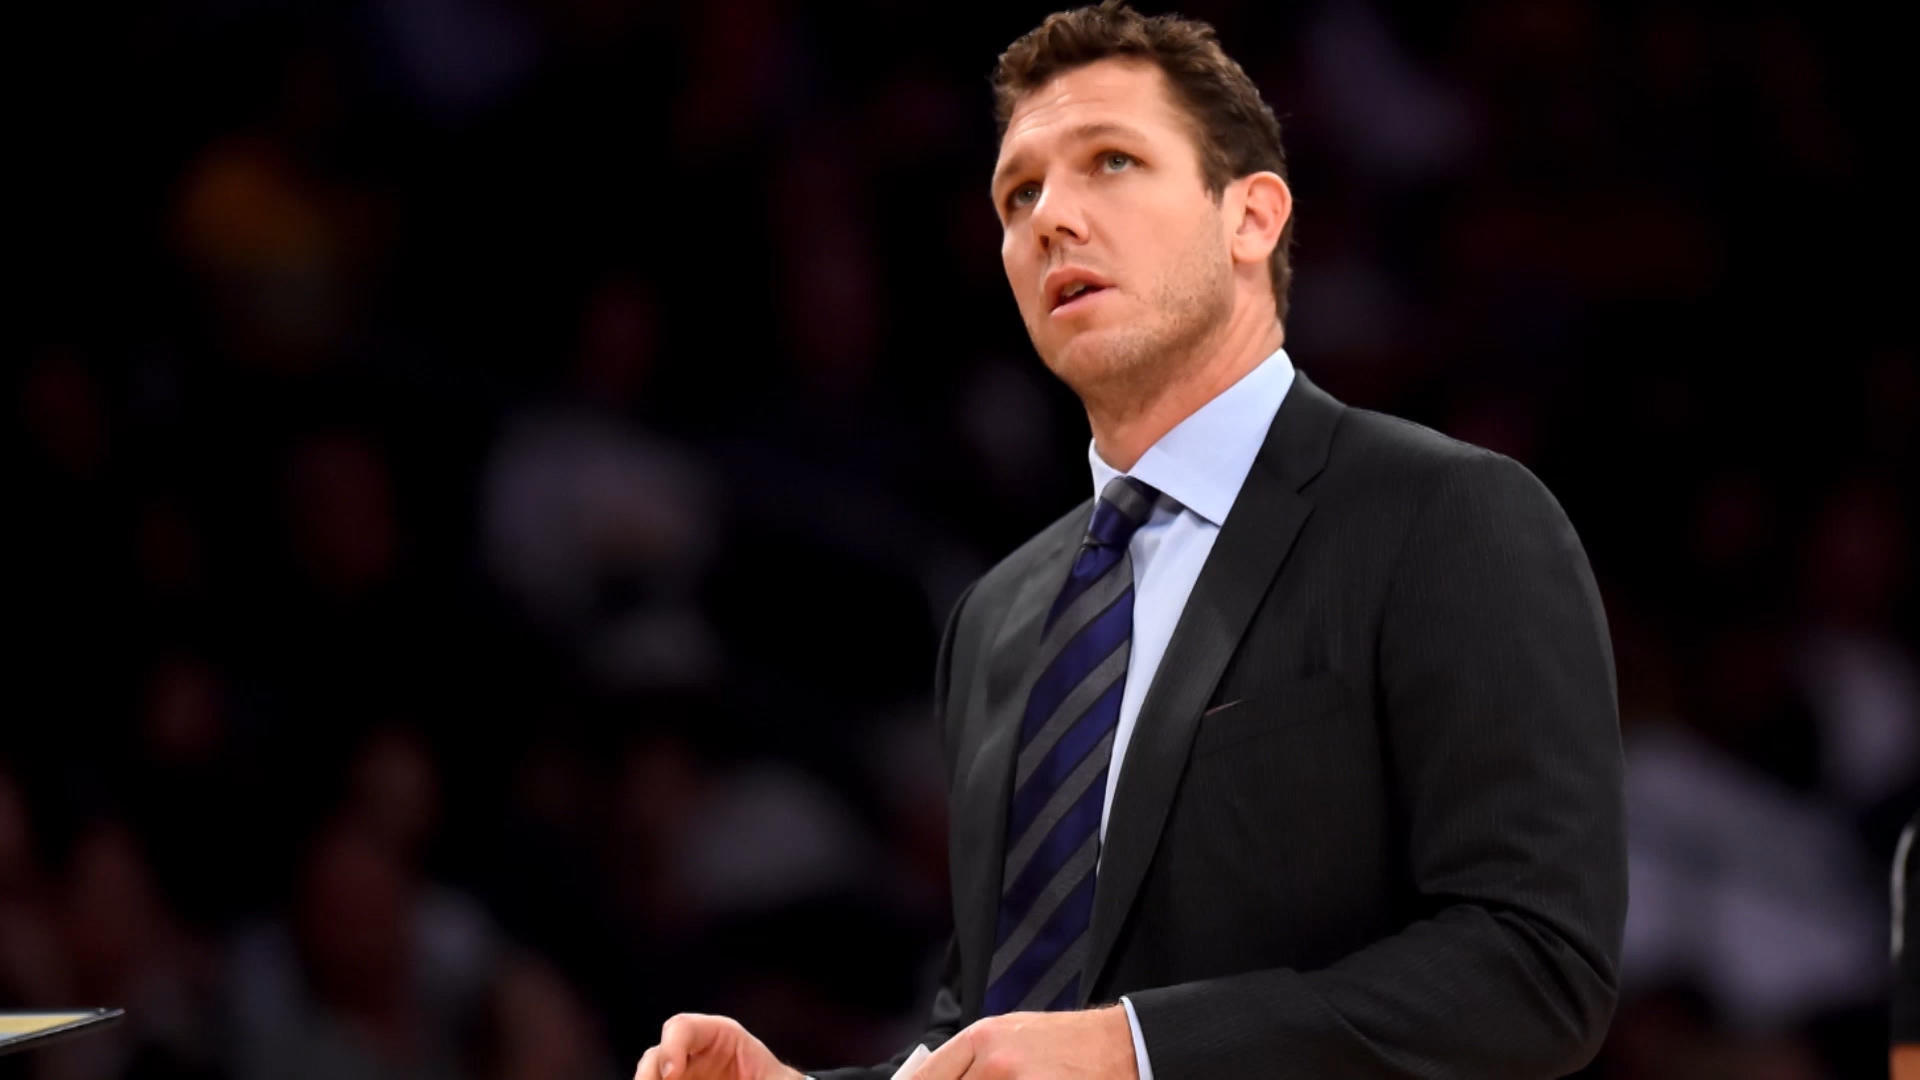 Lakers veterans had heated exchange with Luke Walton after loss to Warriors, per report